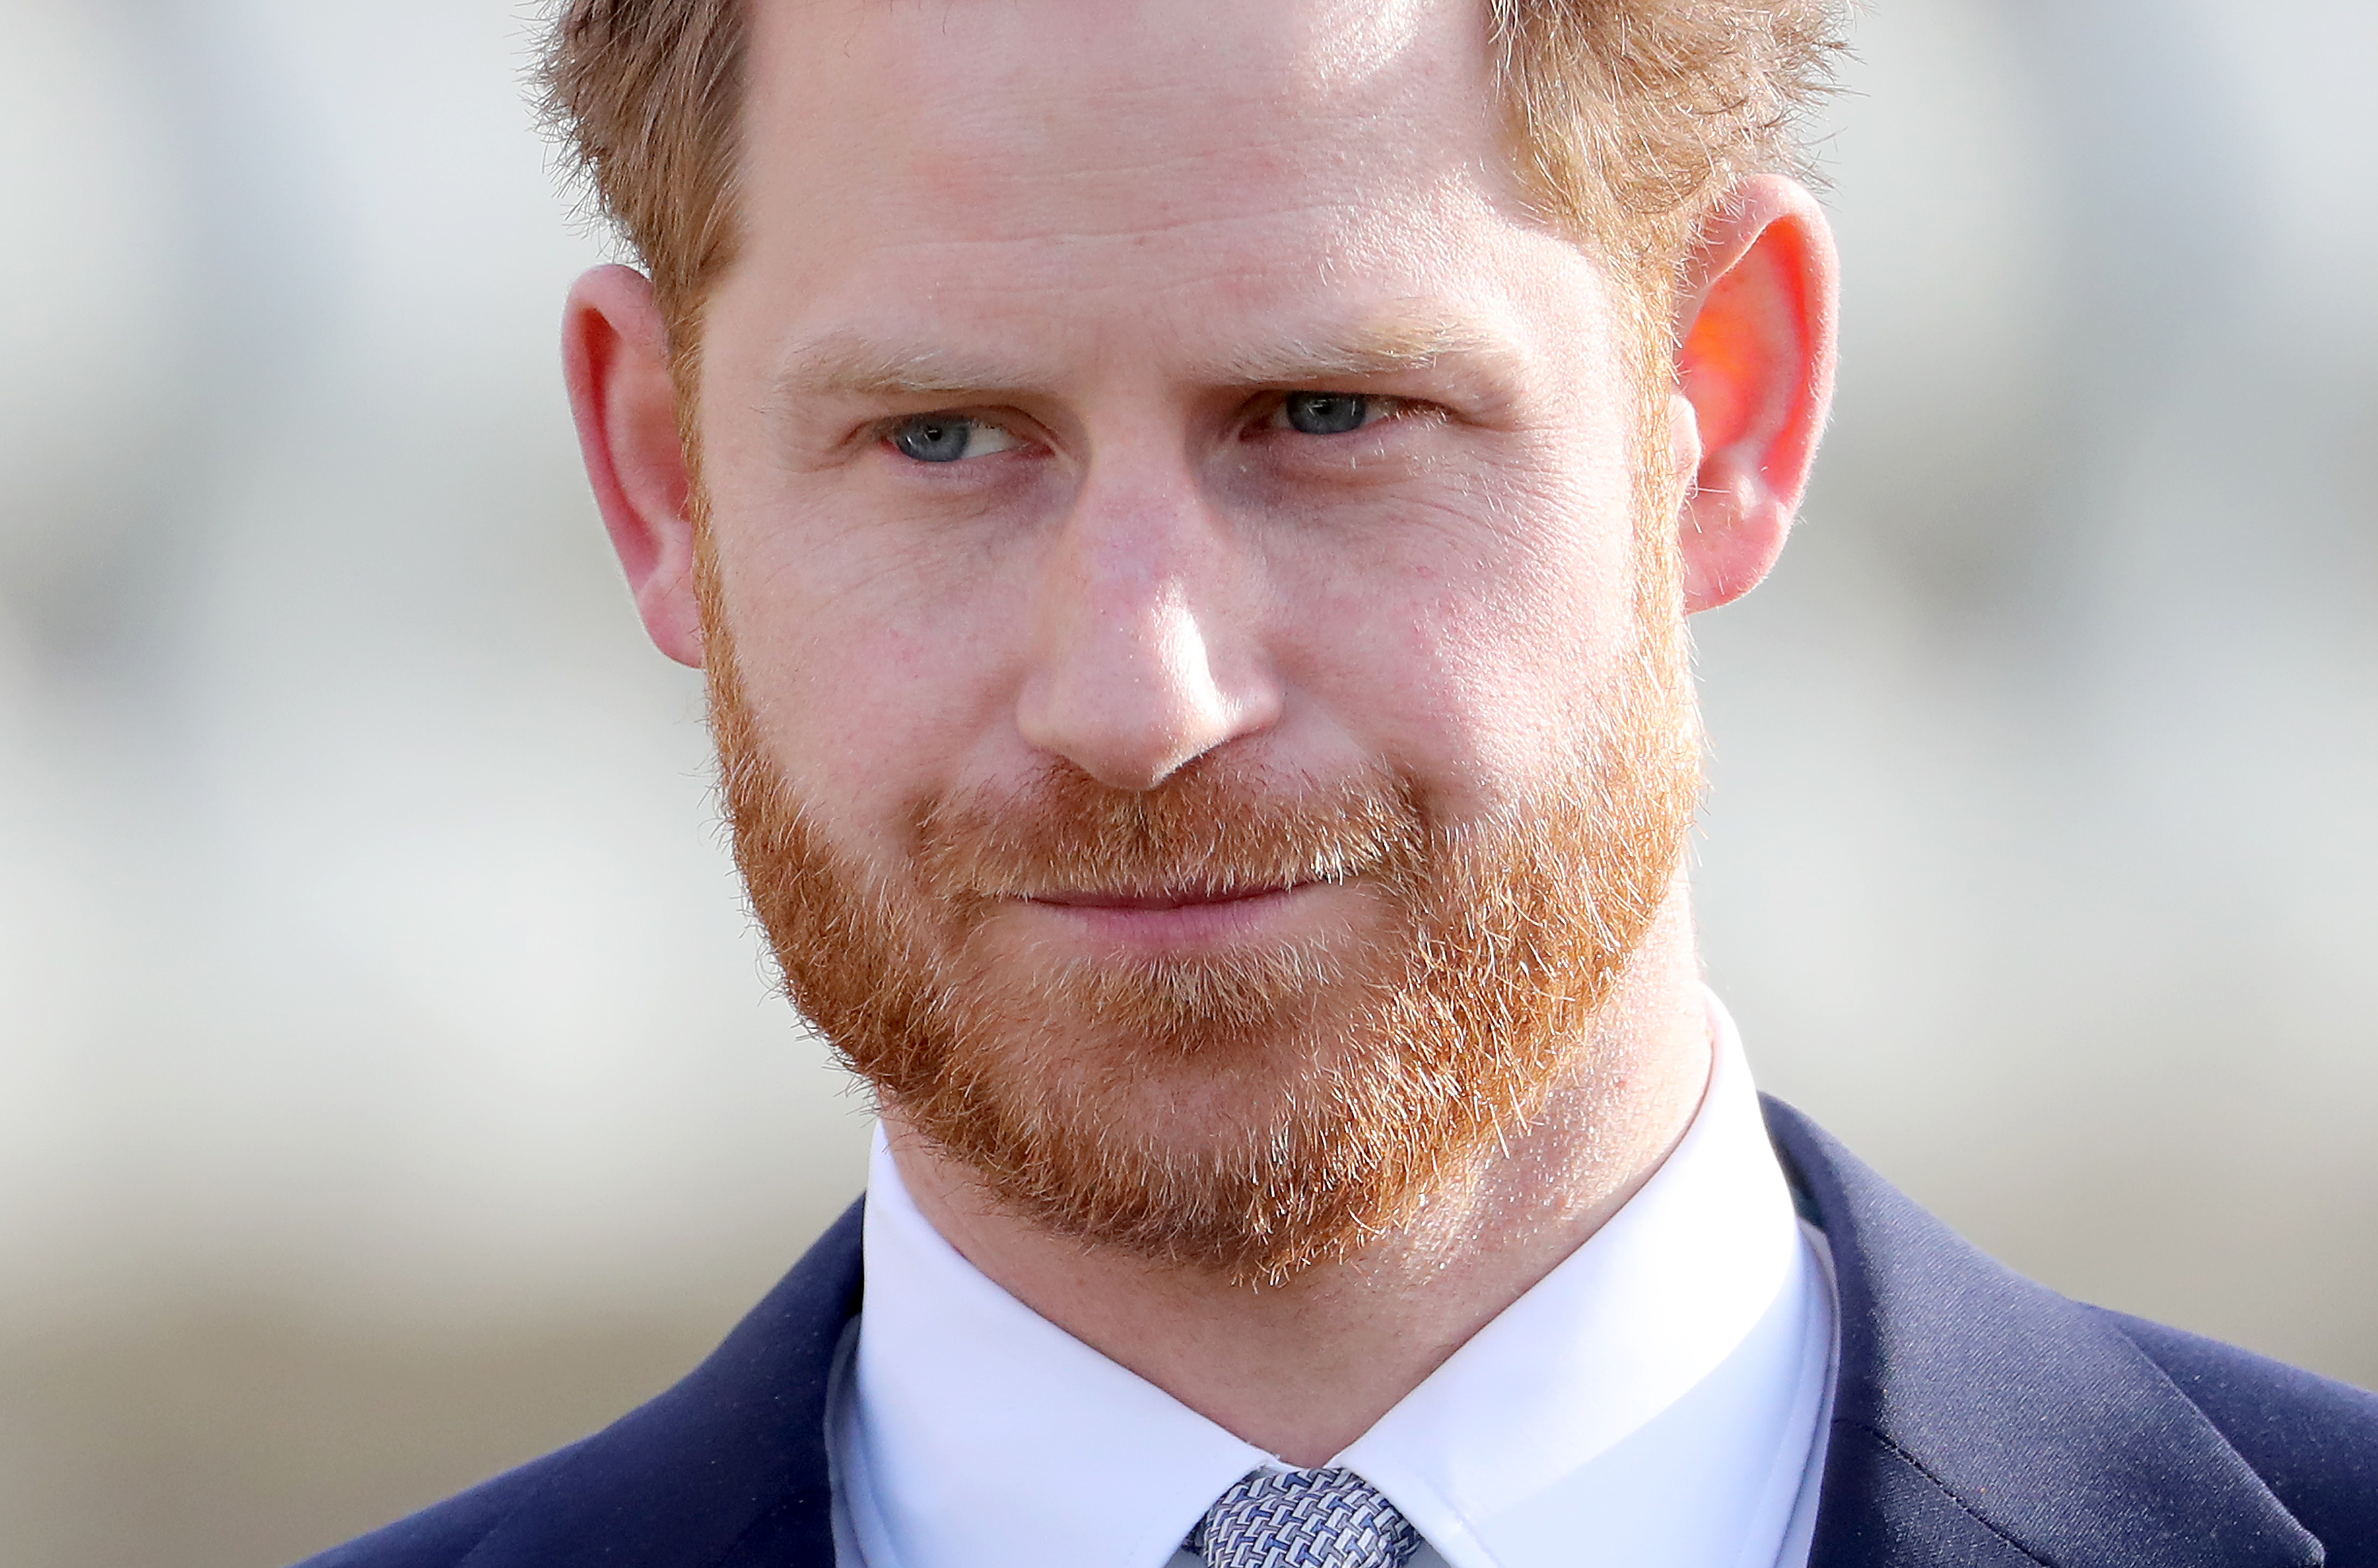 LONDON, ENGLAND - JANUARY 16: Prince Harry, Duke of Sussex hosts the Rugby League World Cup 2021 draws for the men's, women's and wheelchair tournaments at Buckingham Palace on January 16, 2020 in London, England. (Photo by Chris Jackson/Getty Images)